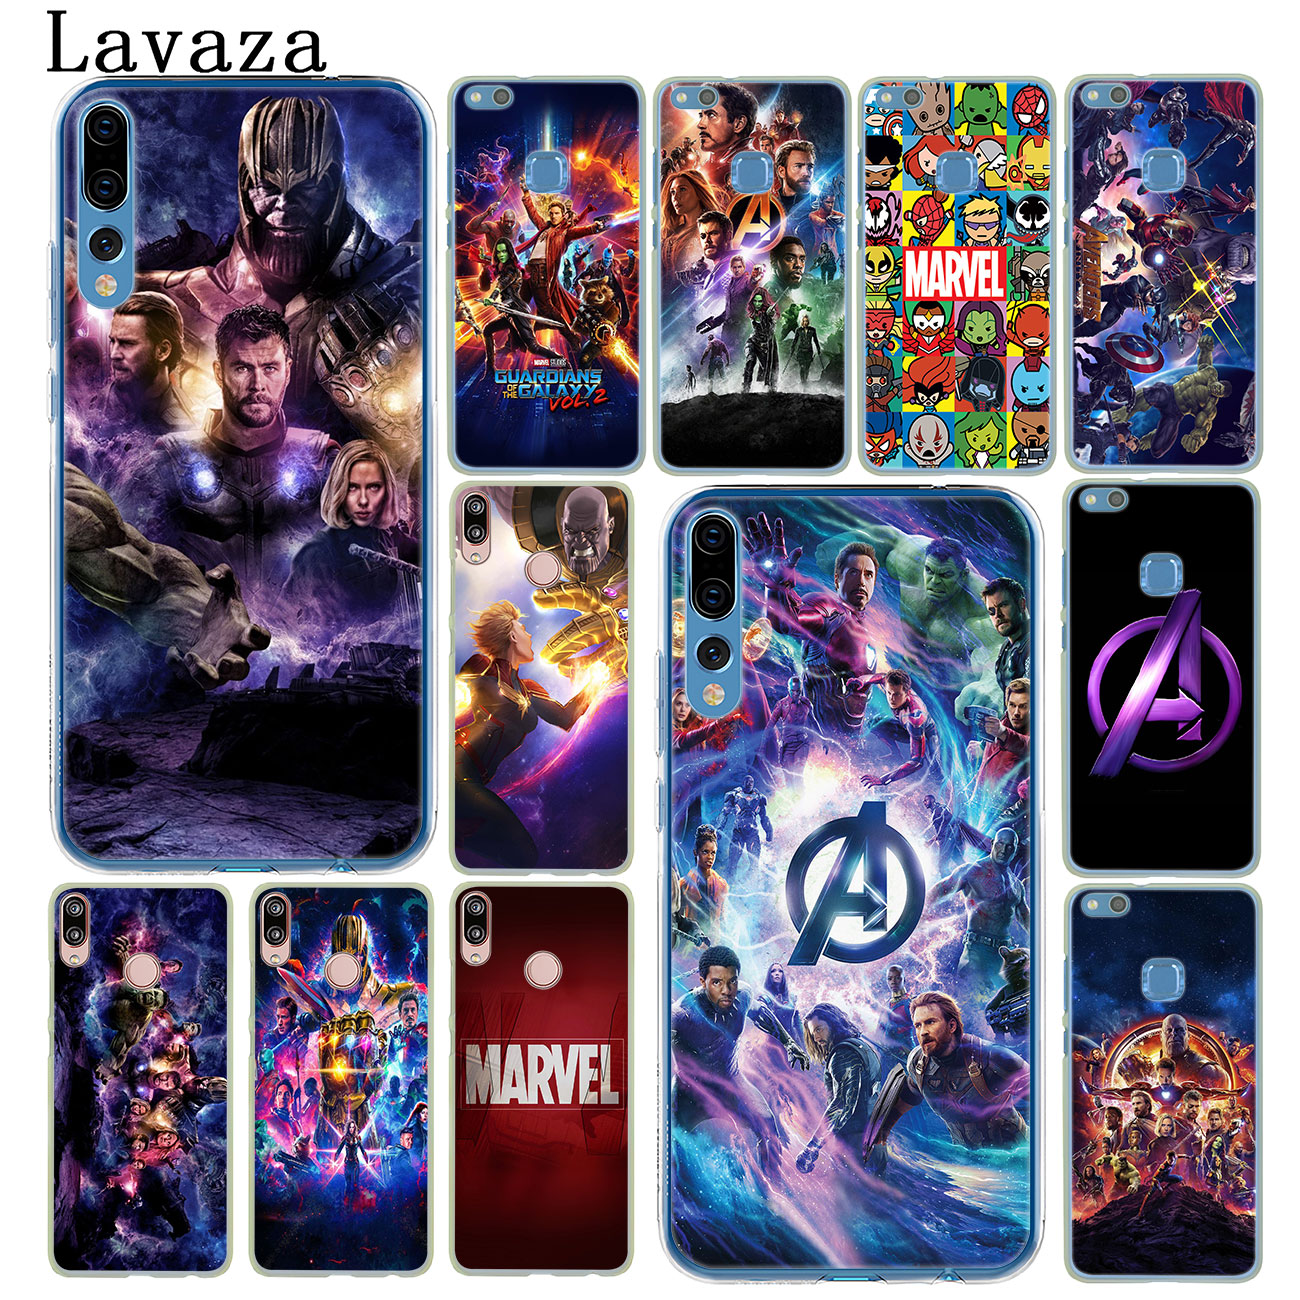 Avengers Endgame <font><b>Marvel</b></font> Captain America Case for <font><b>Huawei</b></font> P30 P20 Pro P9 <font><b>P10</b></font> Plus P8 <font><b>Lite</b></font> Mini 2016 2017 P smart Z 2019 <font><b>Cover</b></font> image